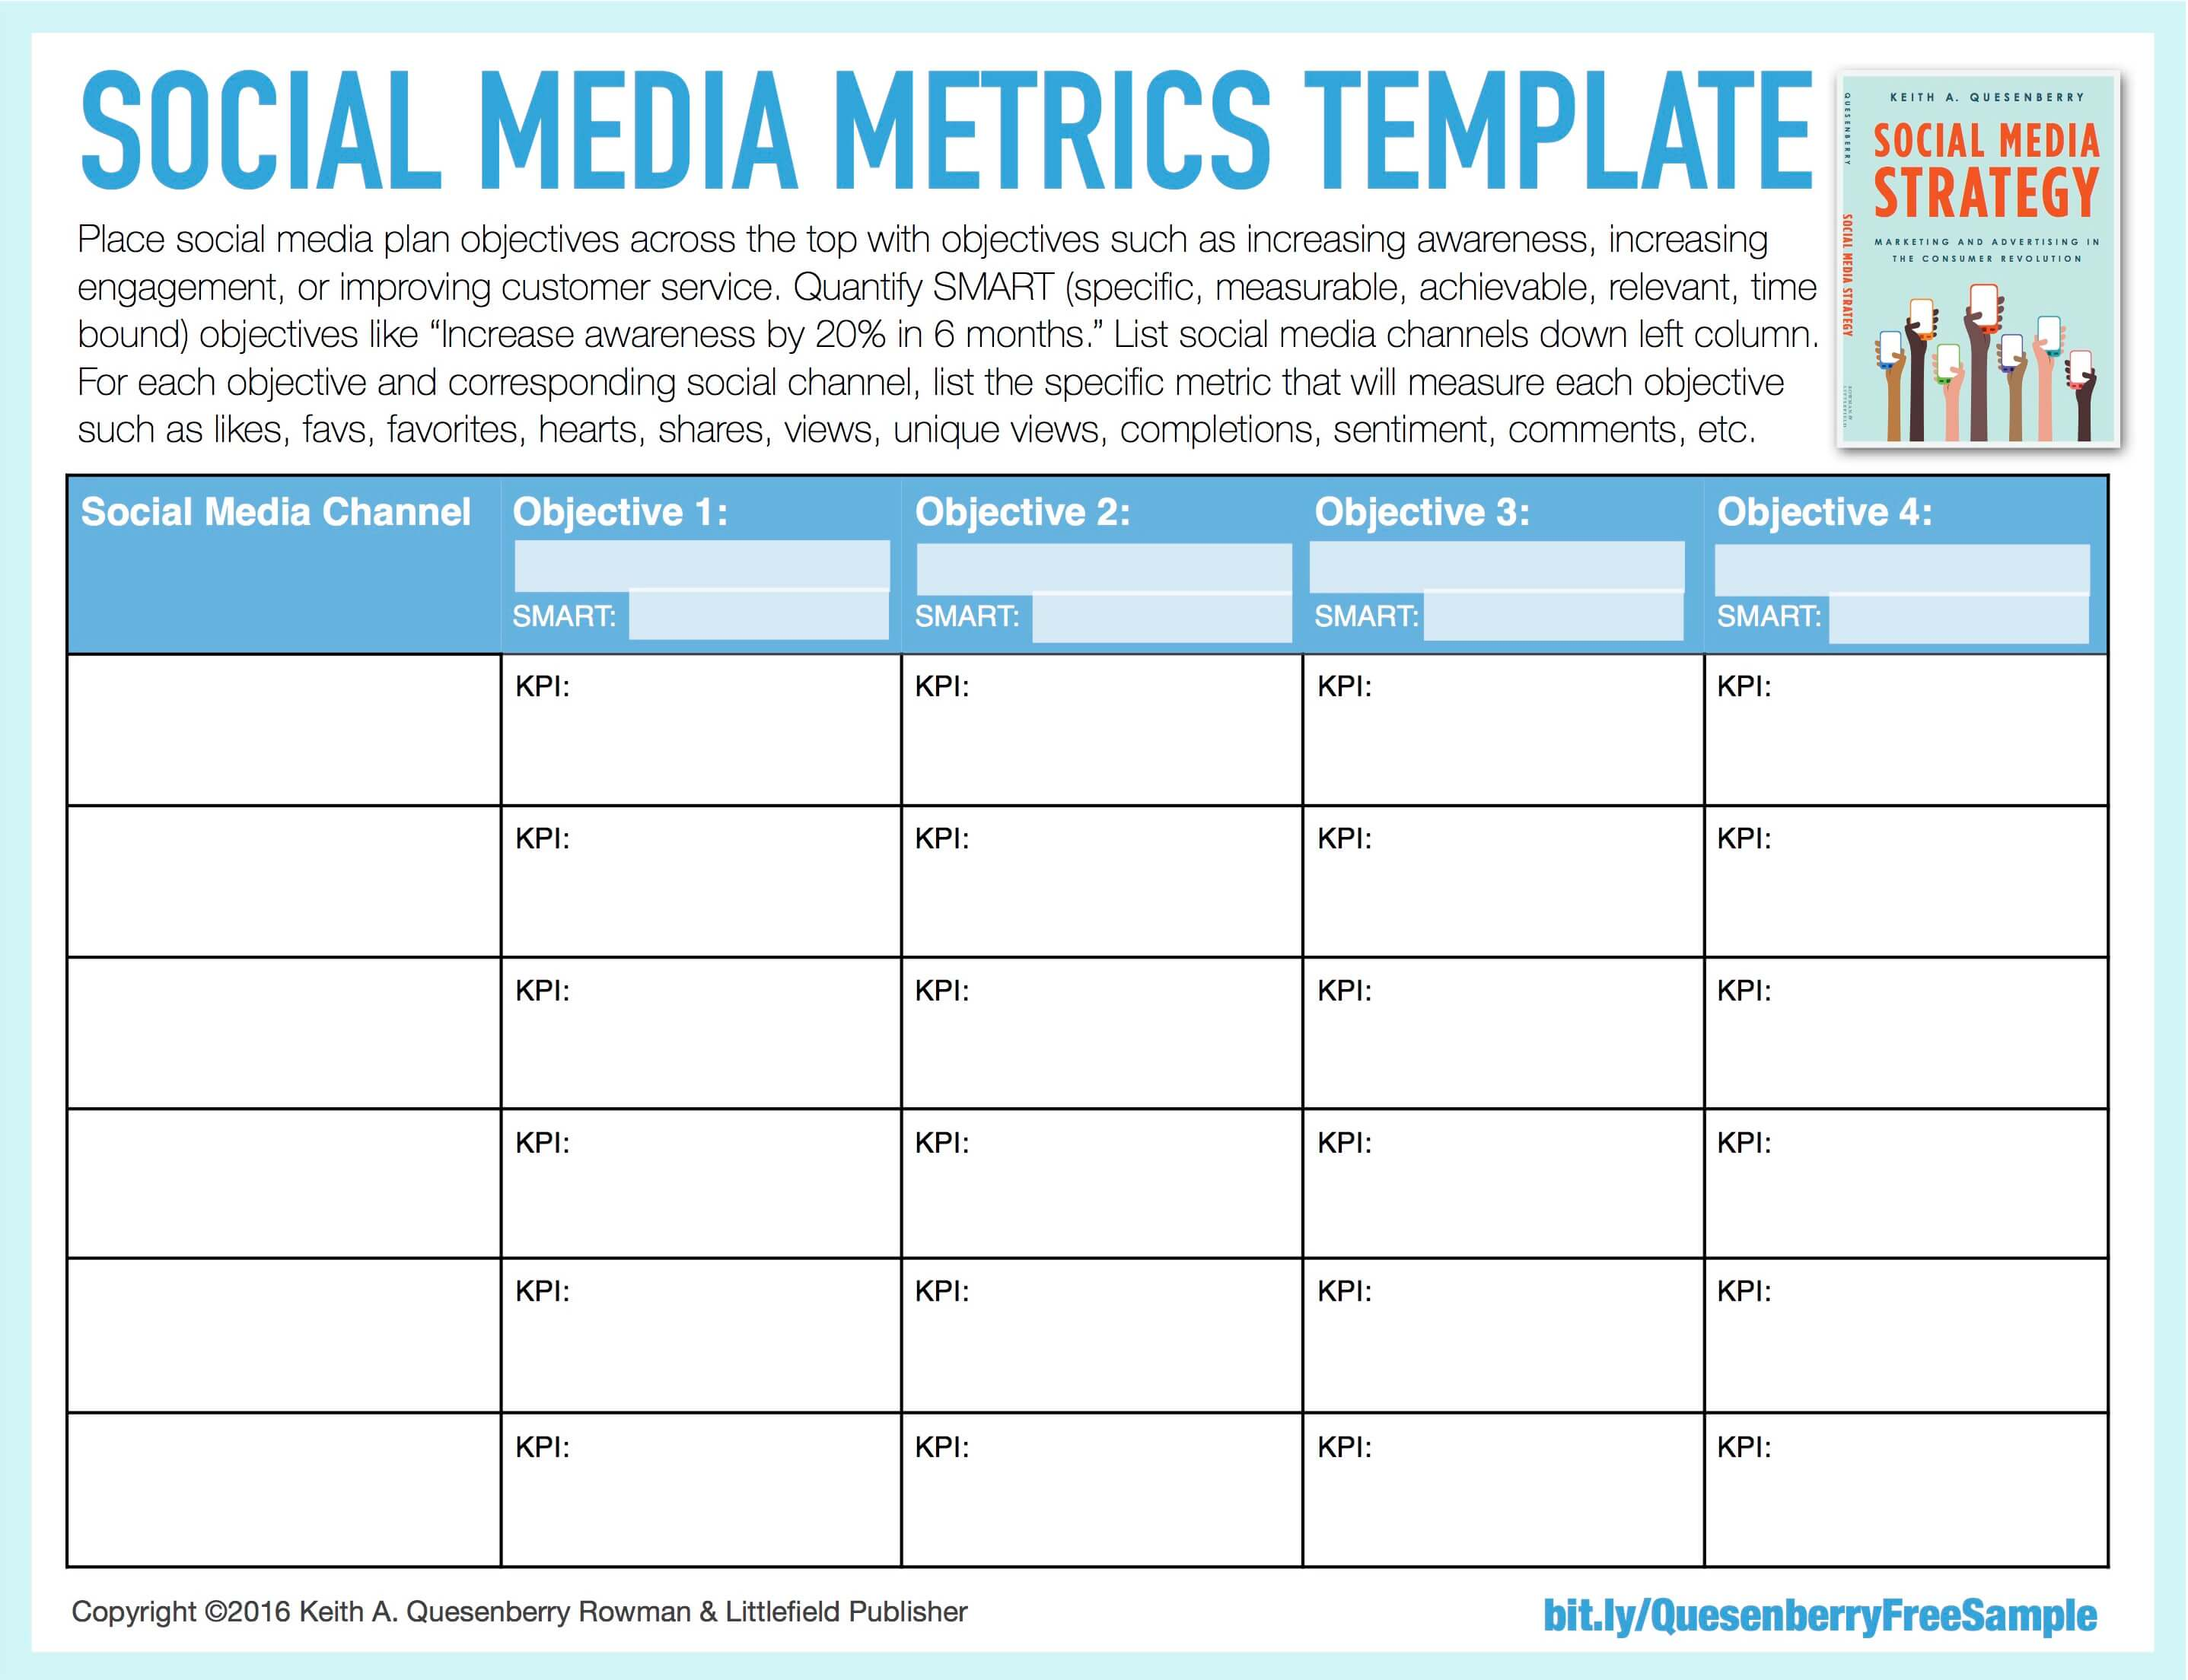 social media plans template - social media templates keith a quesenberry